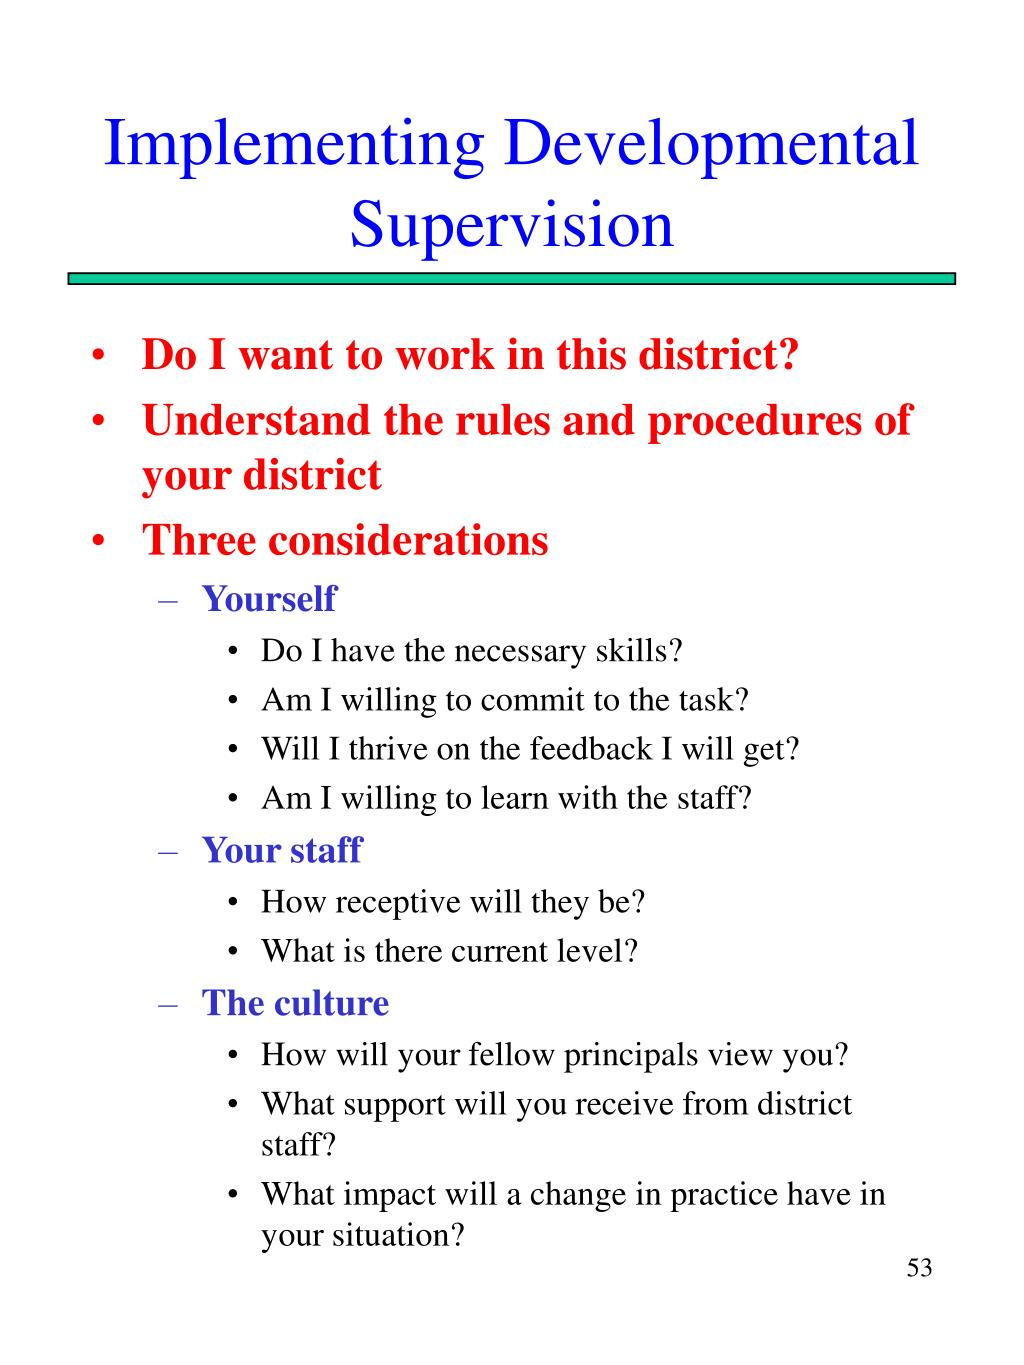 Implementing Developmental Supervision